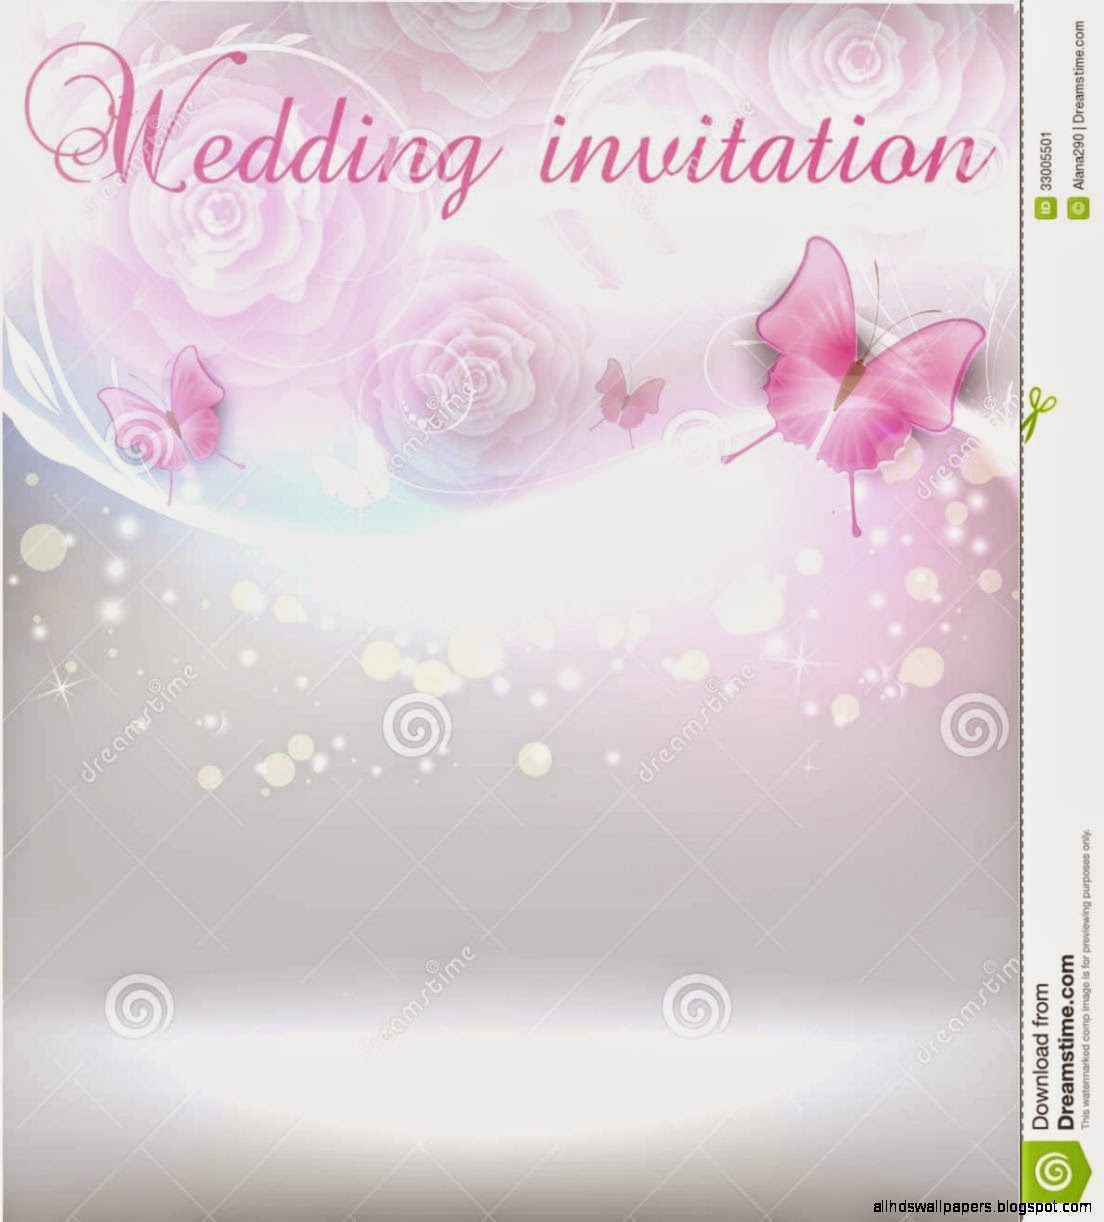 Wedding Invitation Background Images All HD Wallpapers